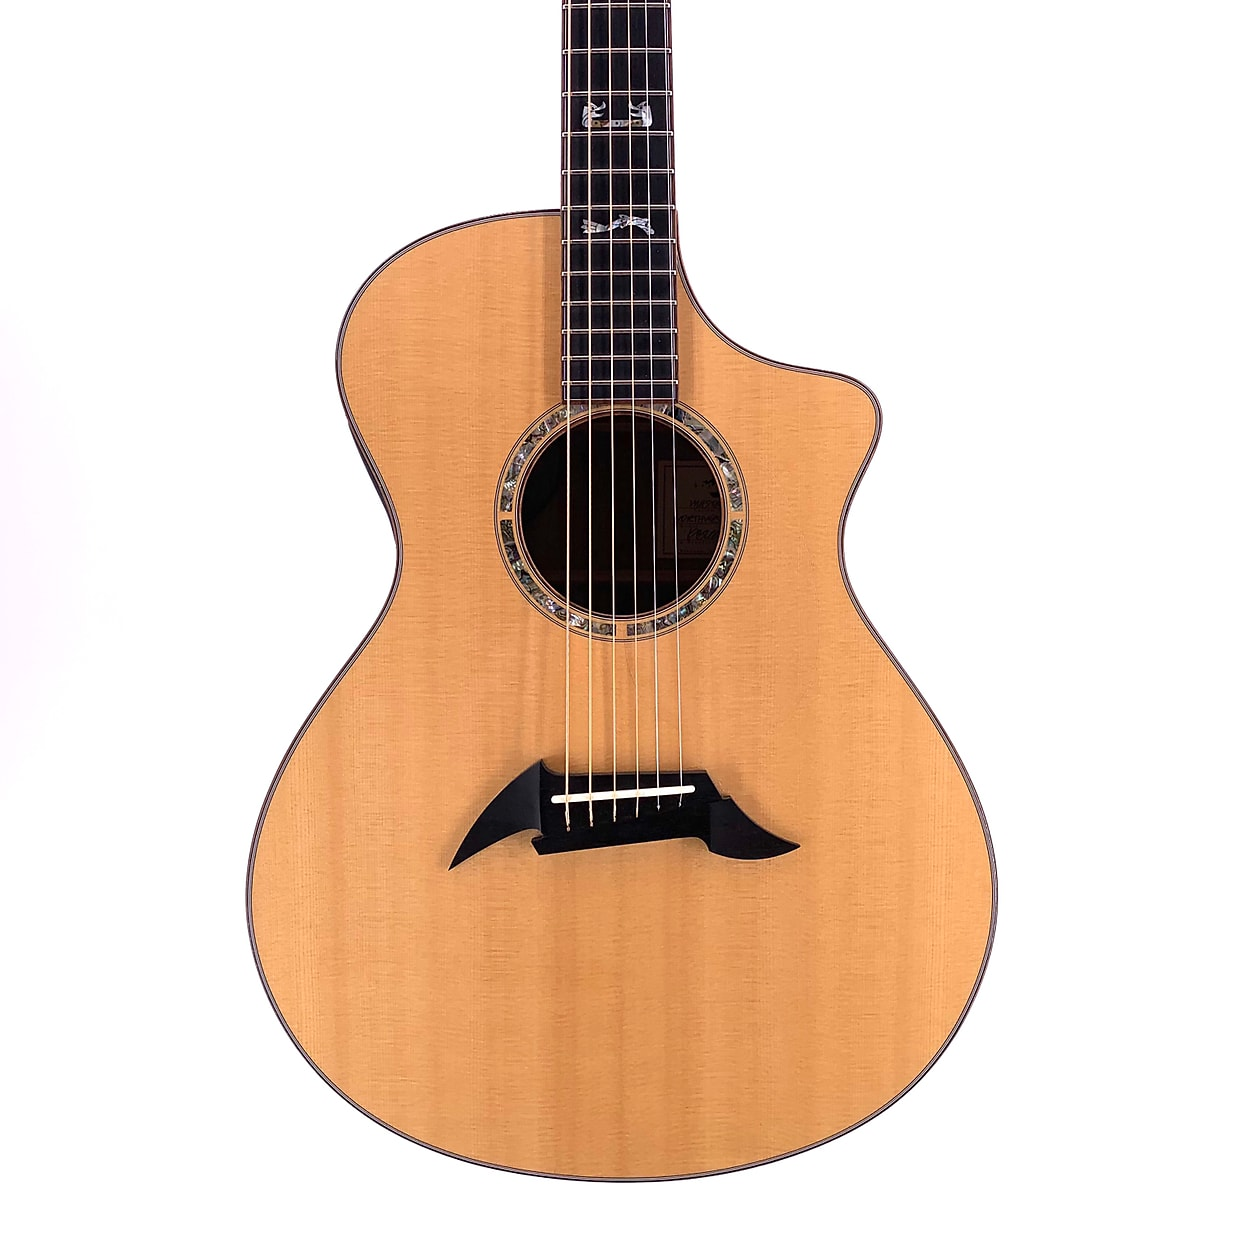 Breedlove Master Class Northwest Classic Concert - Premium Guitar! - Authorized Dealer!